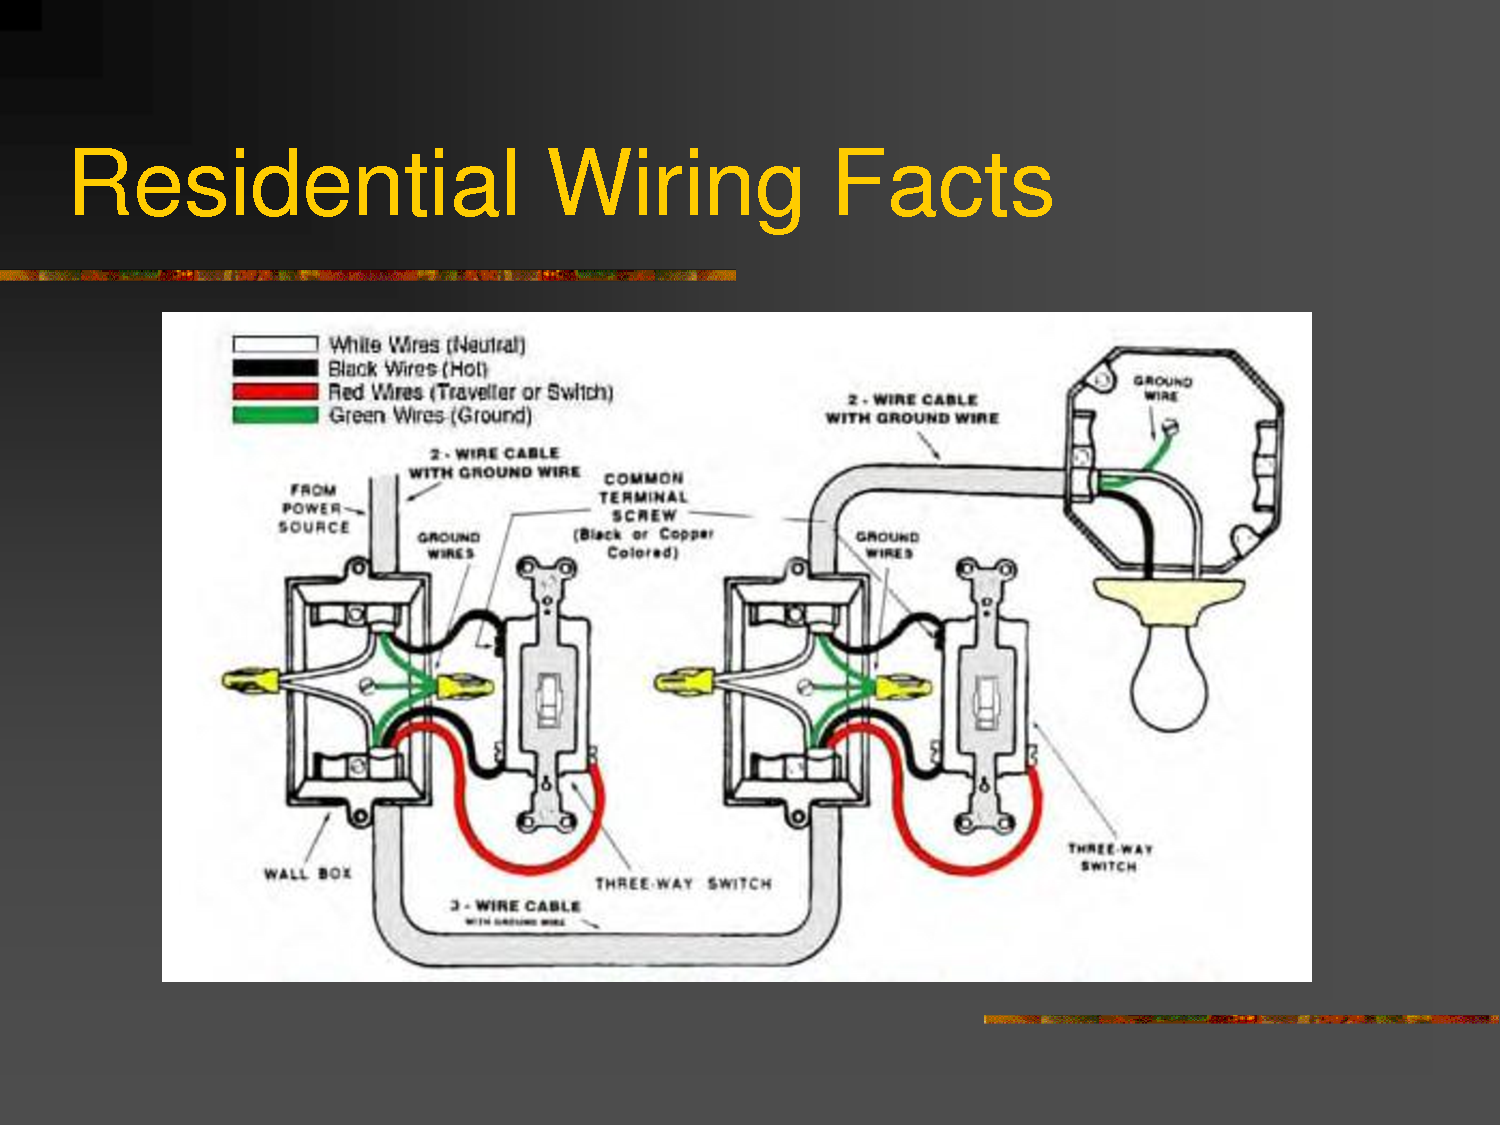 85f6d7068dddf27aa5737fc68962f04e 4 best images of residential wiring diagrams house electrical electrical house wiring diagram at reclaimingppi.co